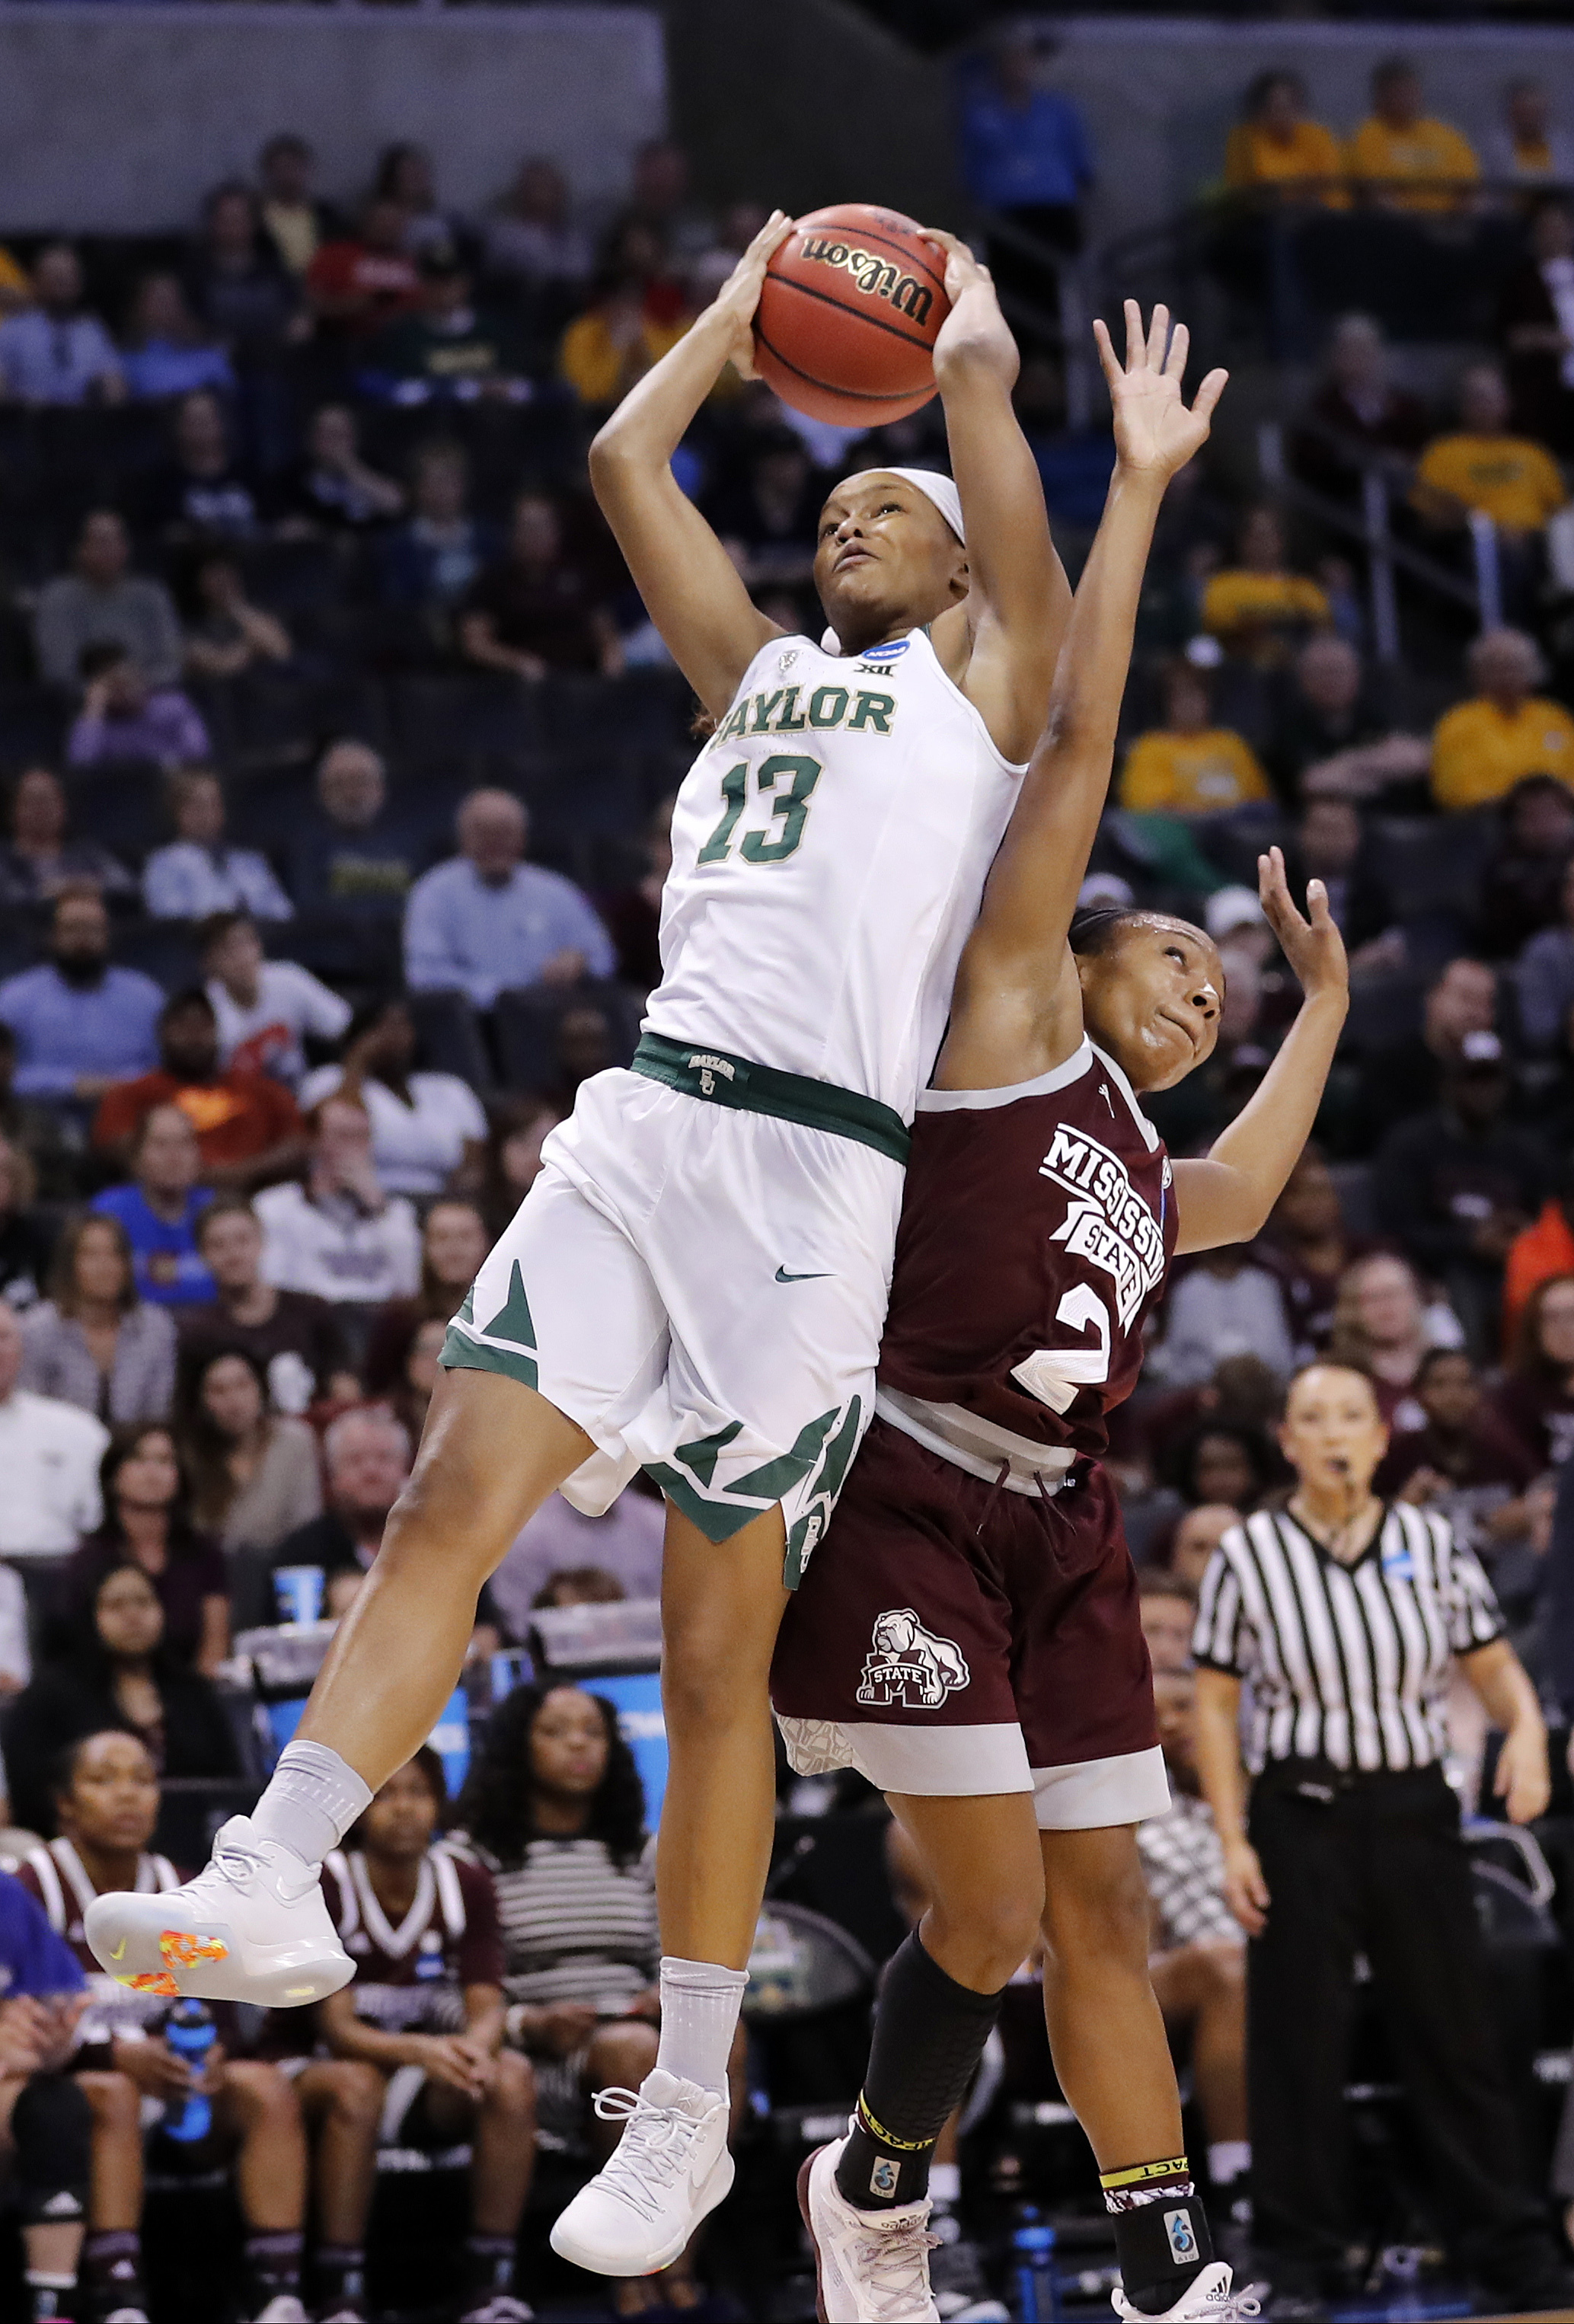 Baylor's Nina Davis (13) grabs a rebound against Mississippi State's Morgan William (2) during the first half of a regional final of the NCAA women's college basketball tournament, Sunday, March 26, 2017, in Oklahoma City. (AP Photo/Alonzo Adams)